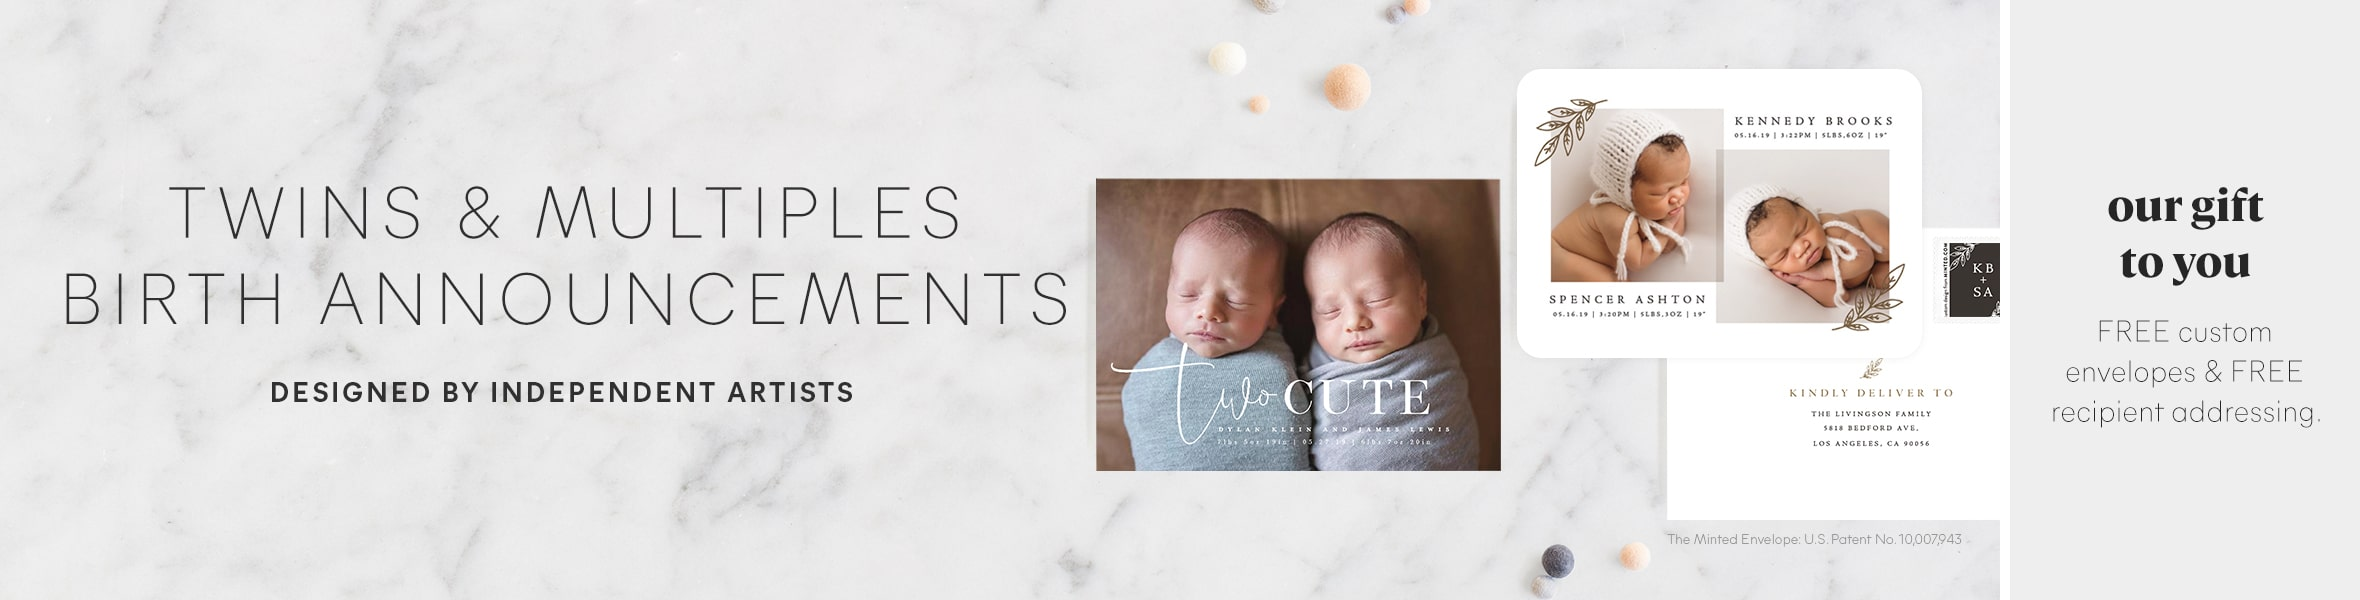 Twins & Multiples Birth Announcement